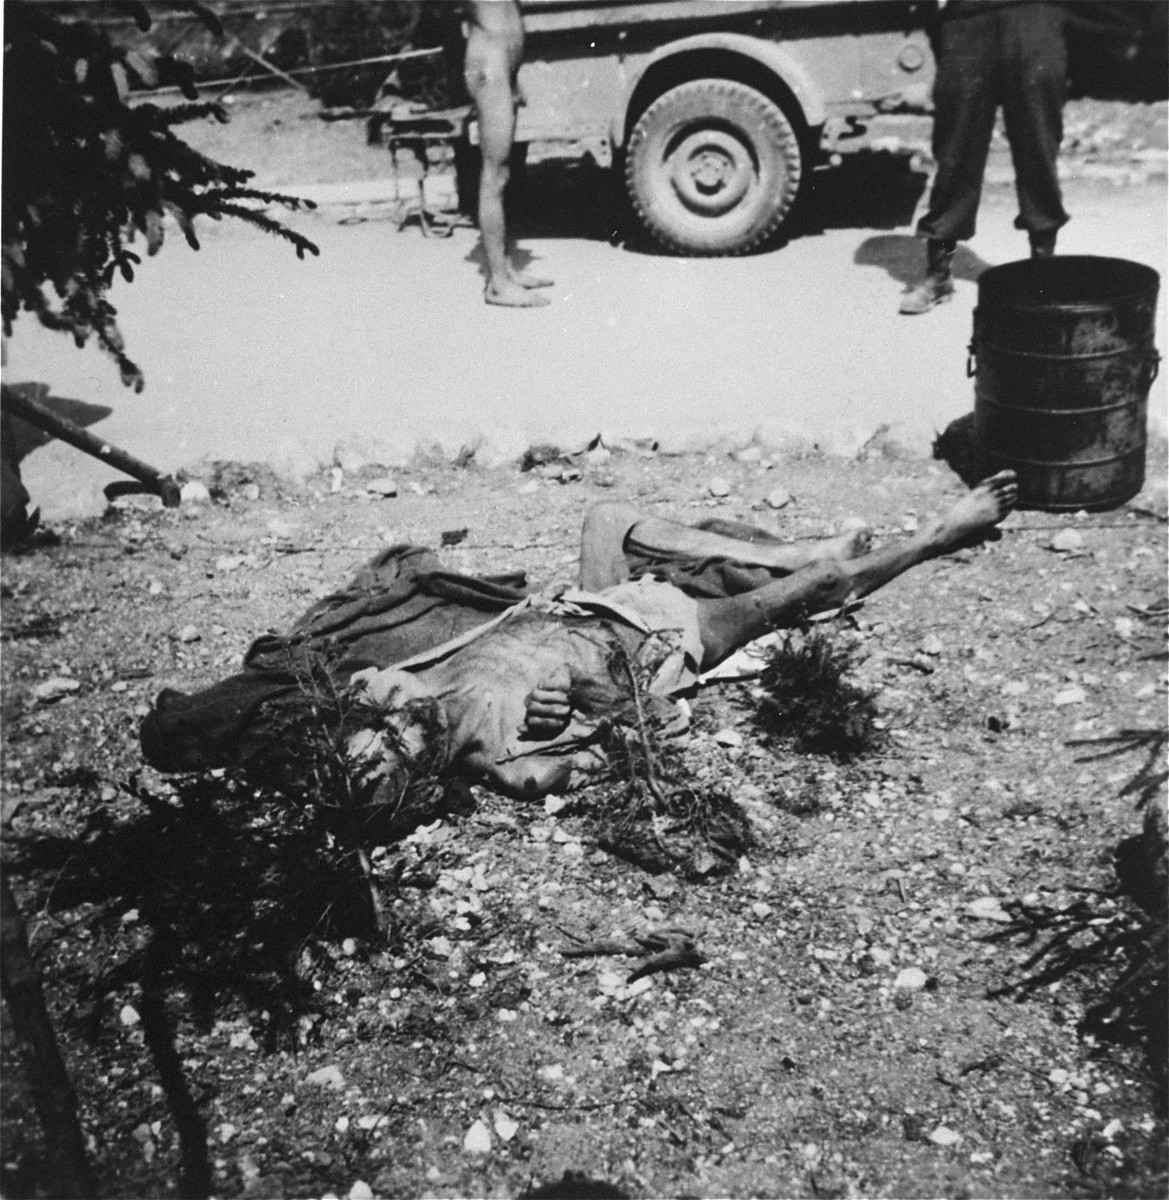 A corpse lies on the ground in the Ebensee sub-camp of Mauthausen after liberation.